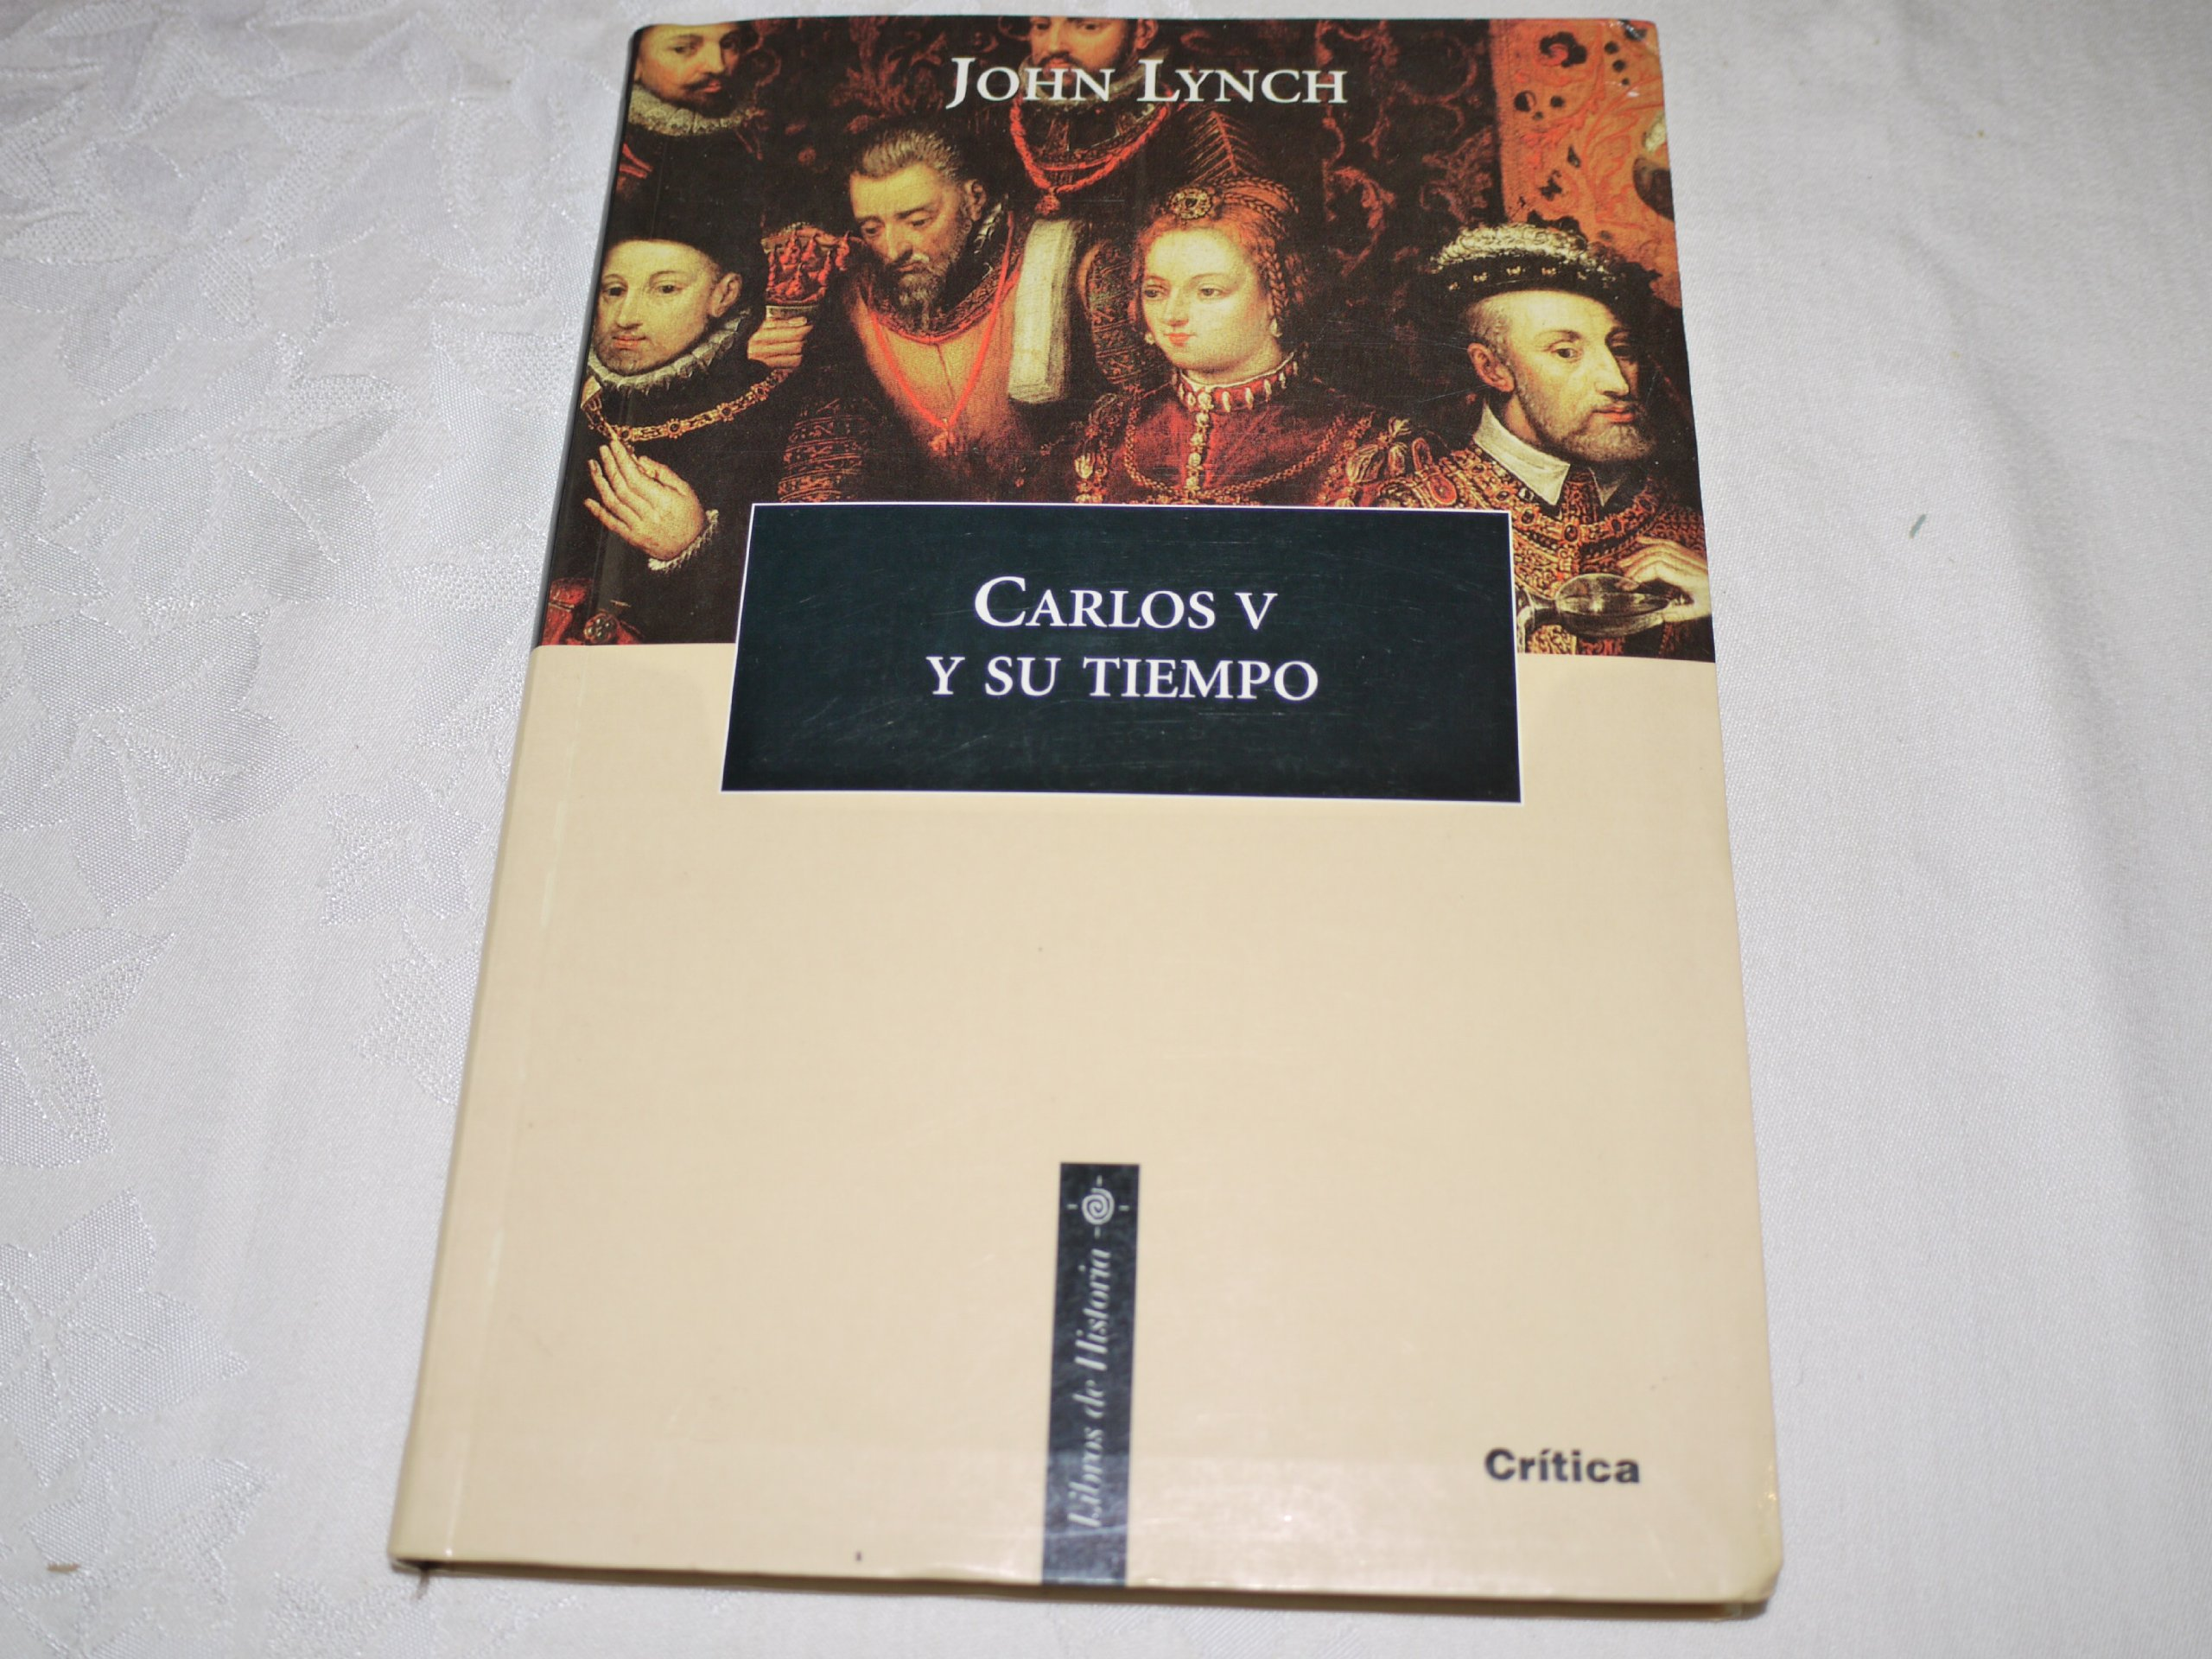 Carlos V y su tiempo: Amazon.es: John Lynch: Libros